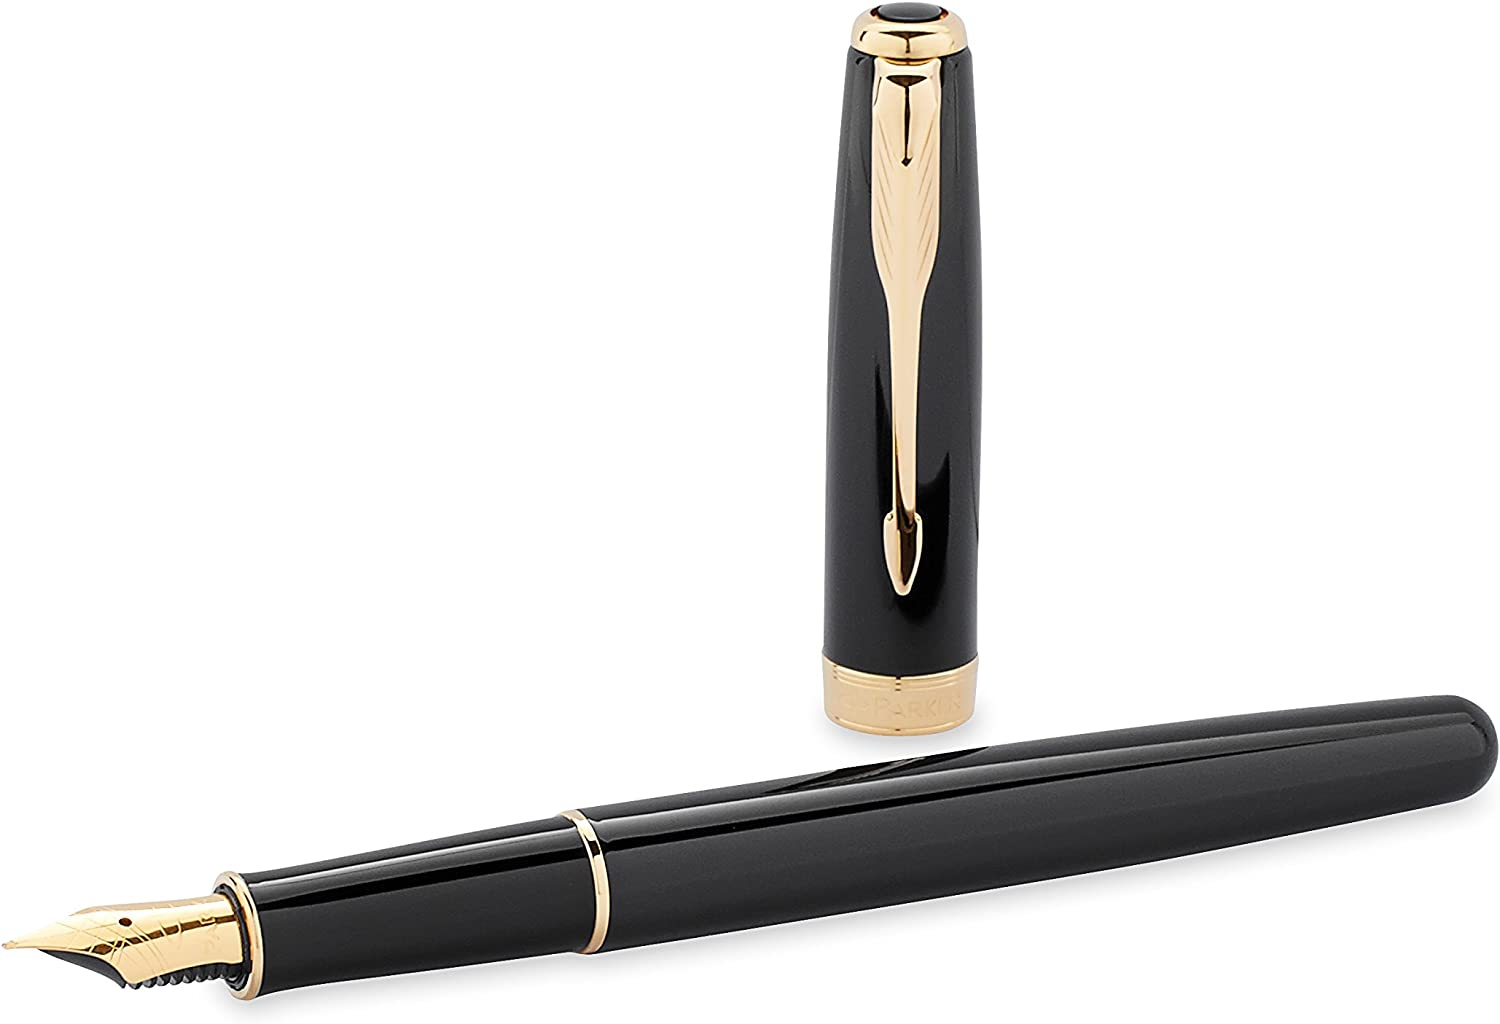 856 Dark Blue Laquered with Gold Plate Ballpoint Pen Jinhao No Blue Refill